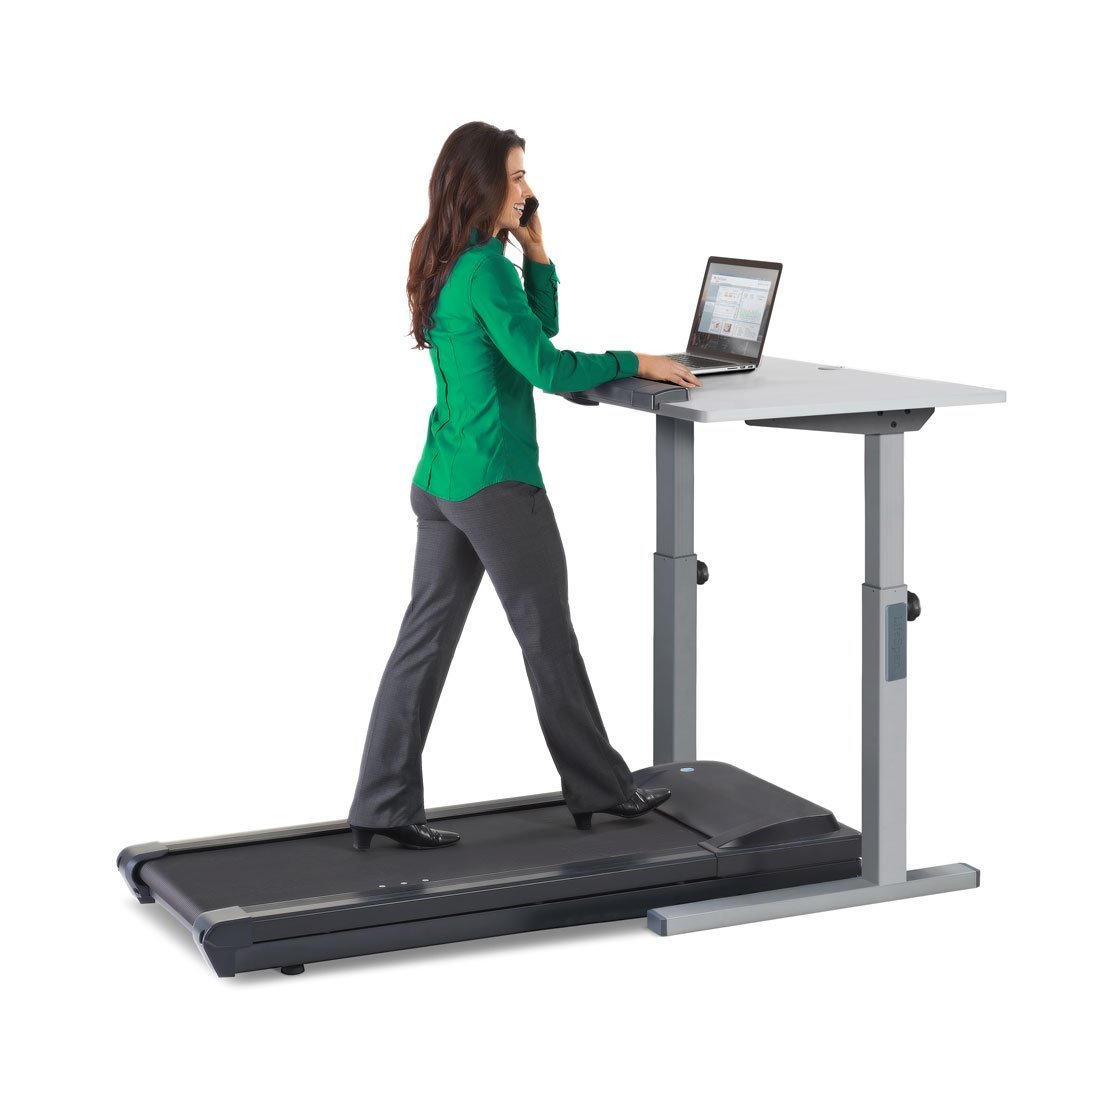 woman on the phone while walking on treadmill working on laptop desk